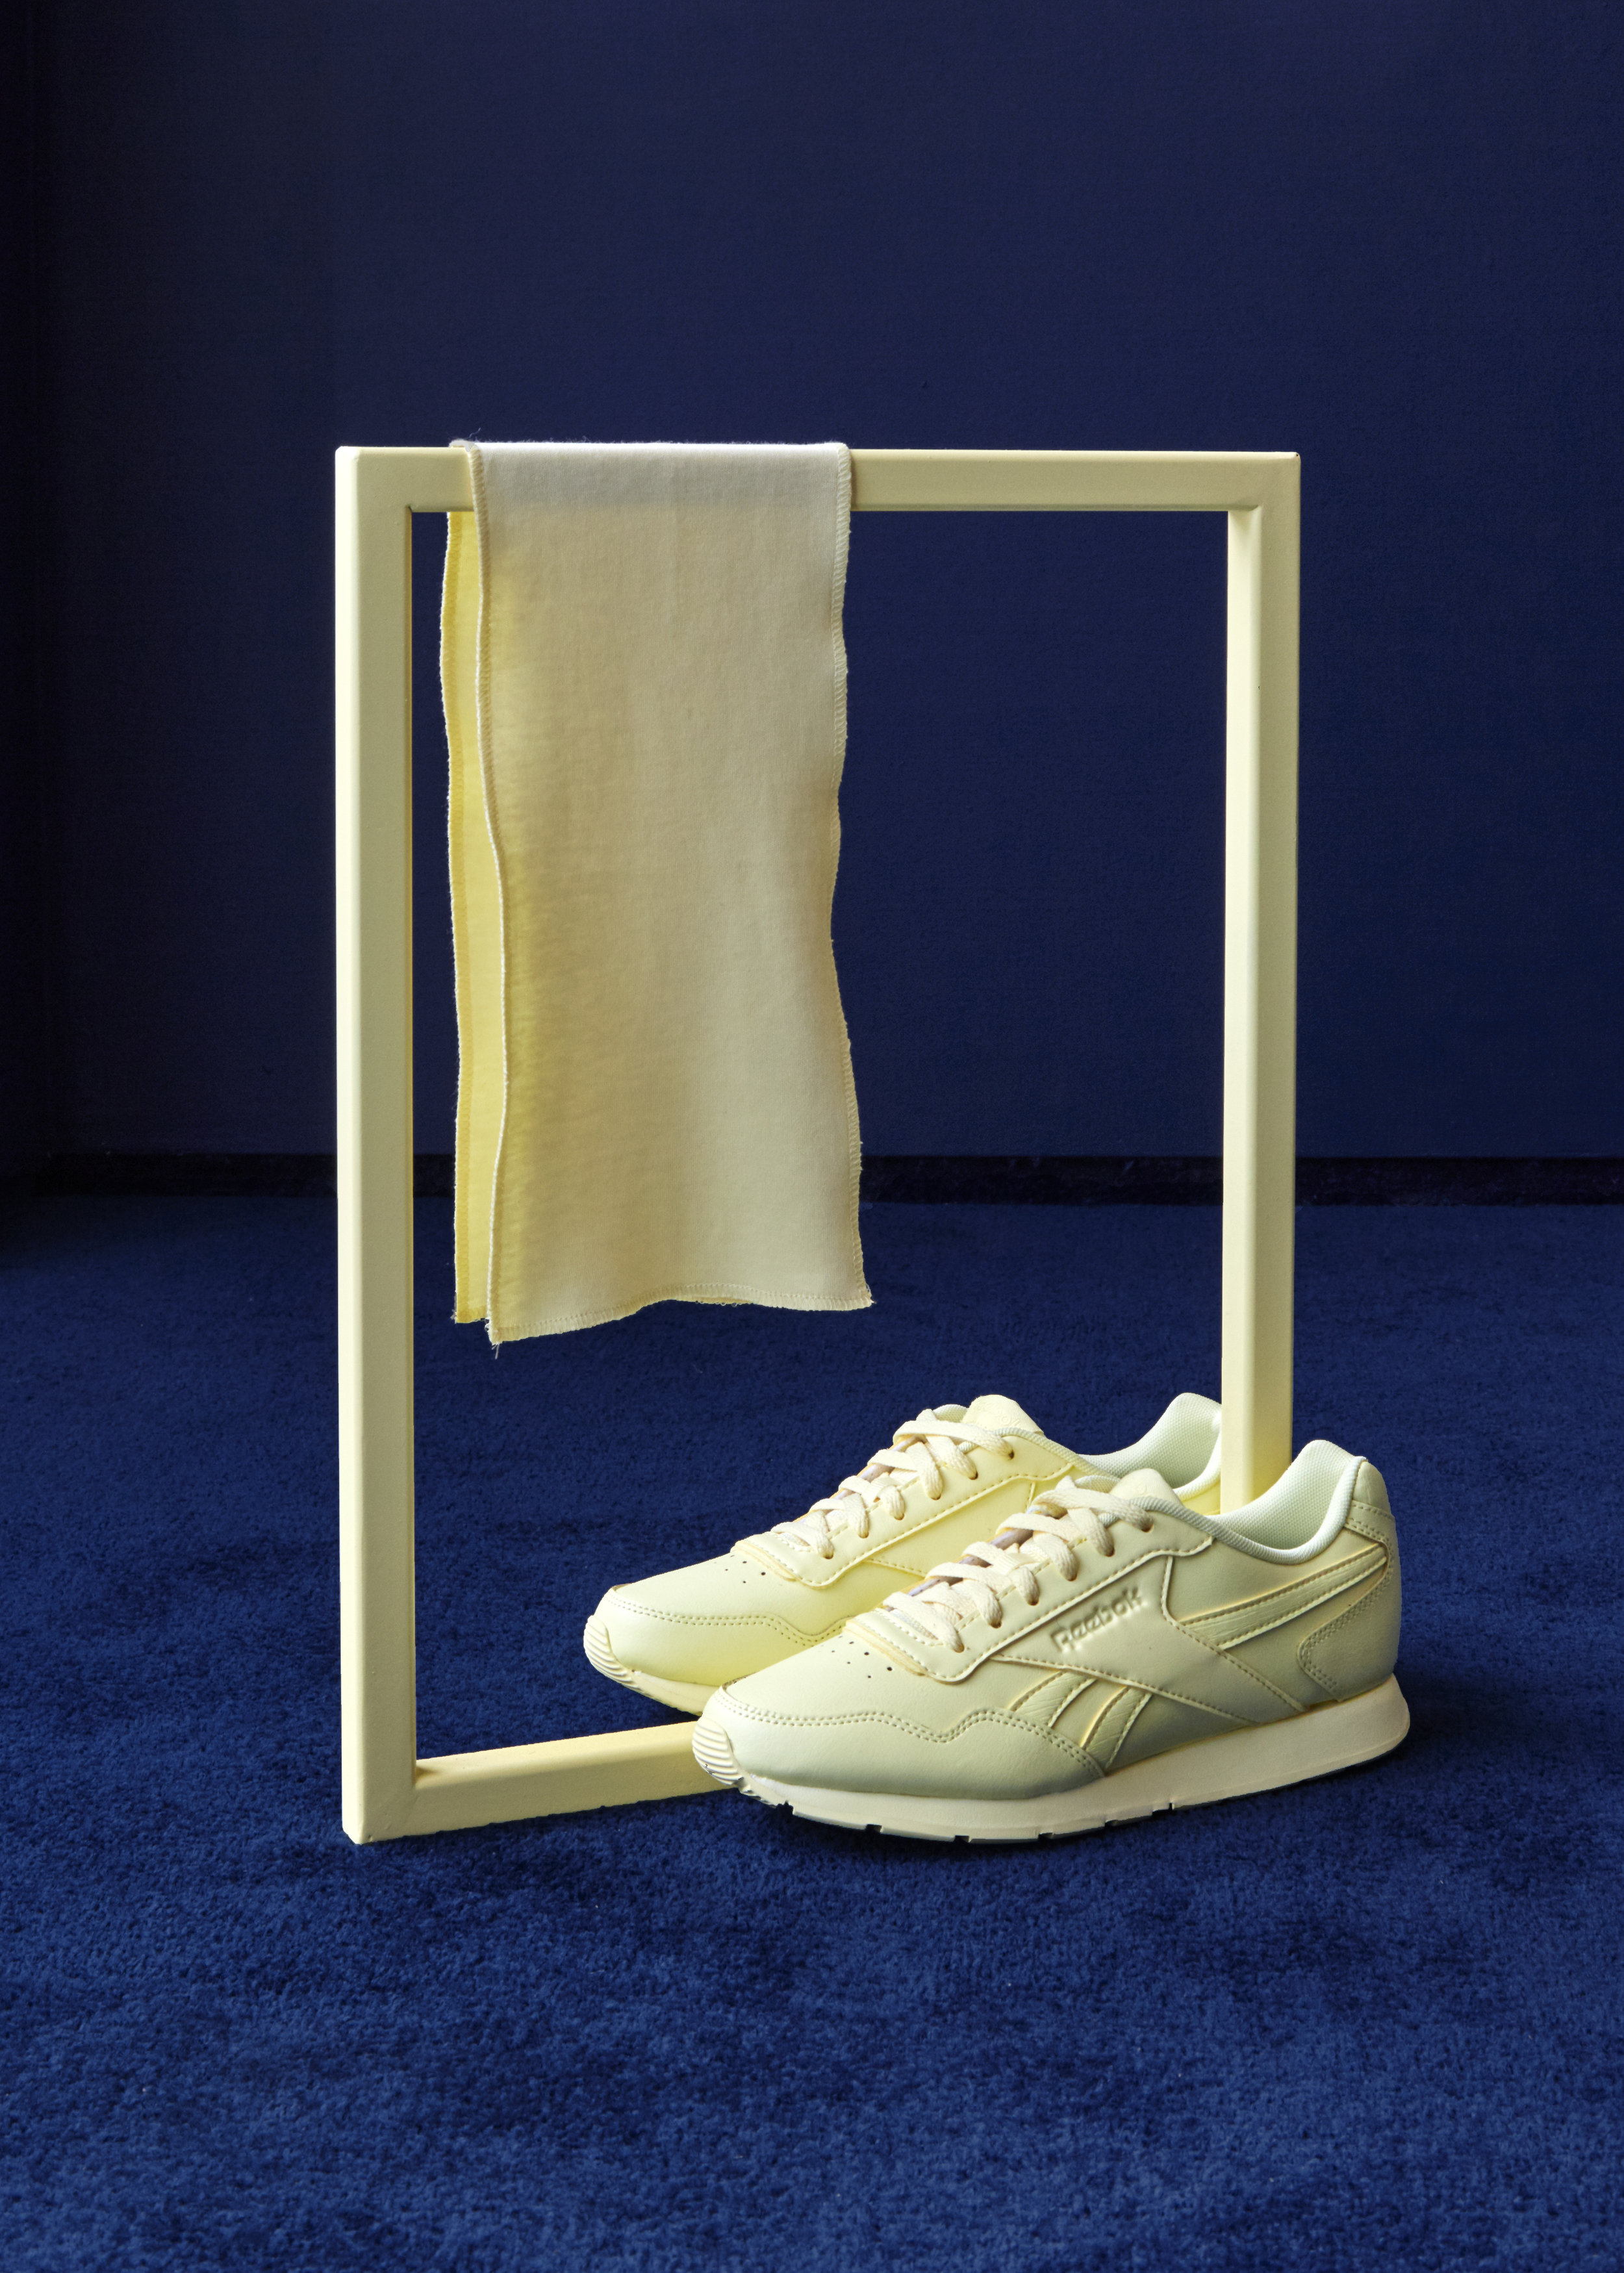 Ode to Bolton , 2019 Reebok Royal Glide shoes, American cotton, painted mild steel frame 44 x 34 x 18 cm